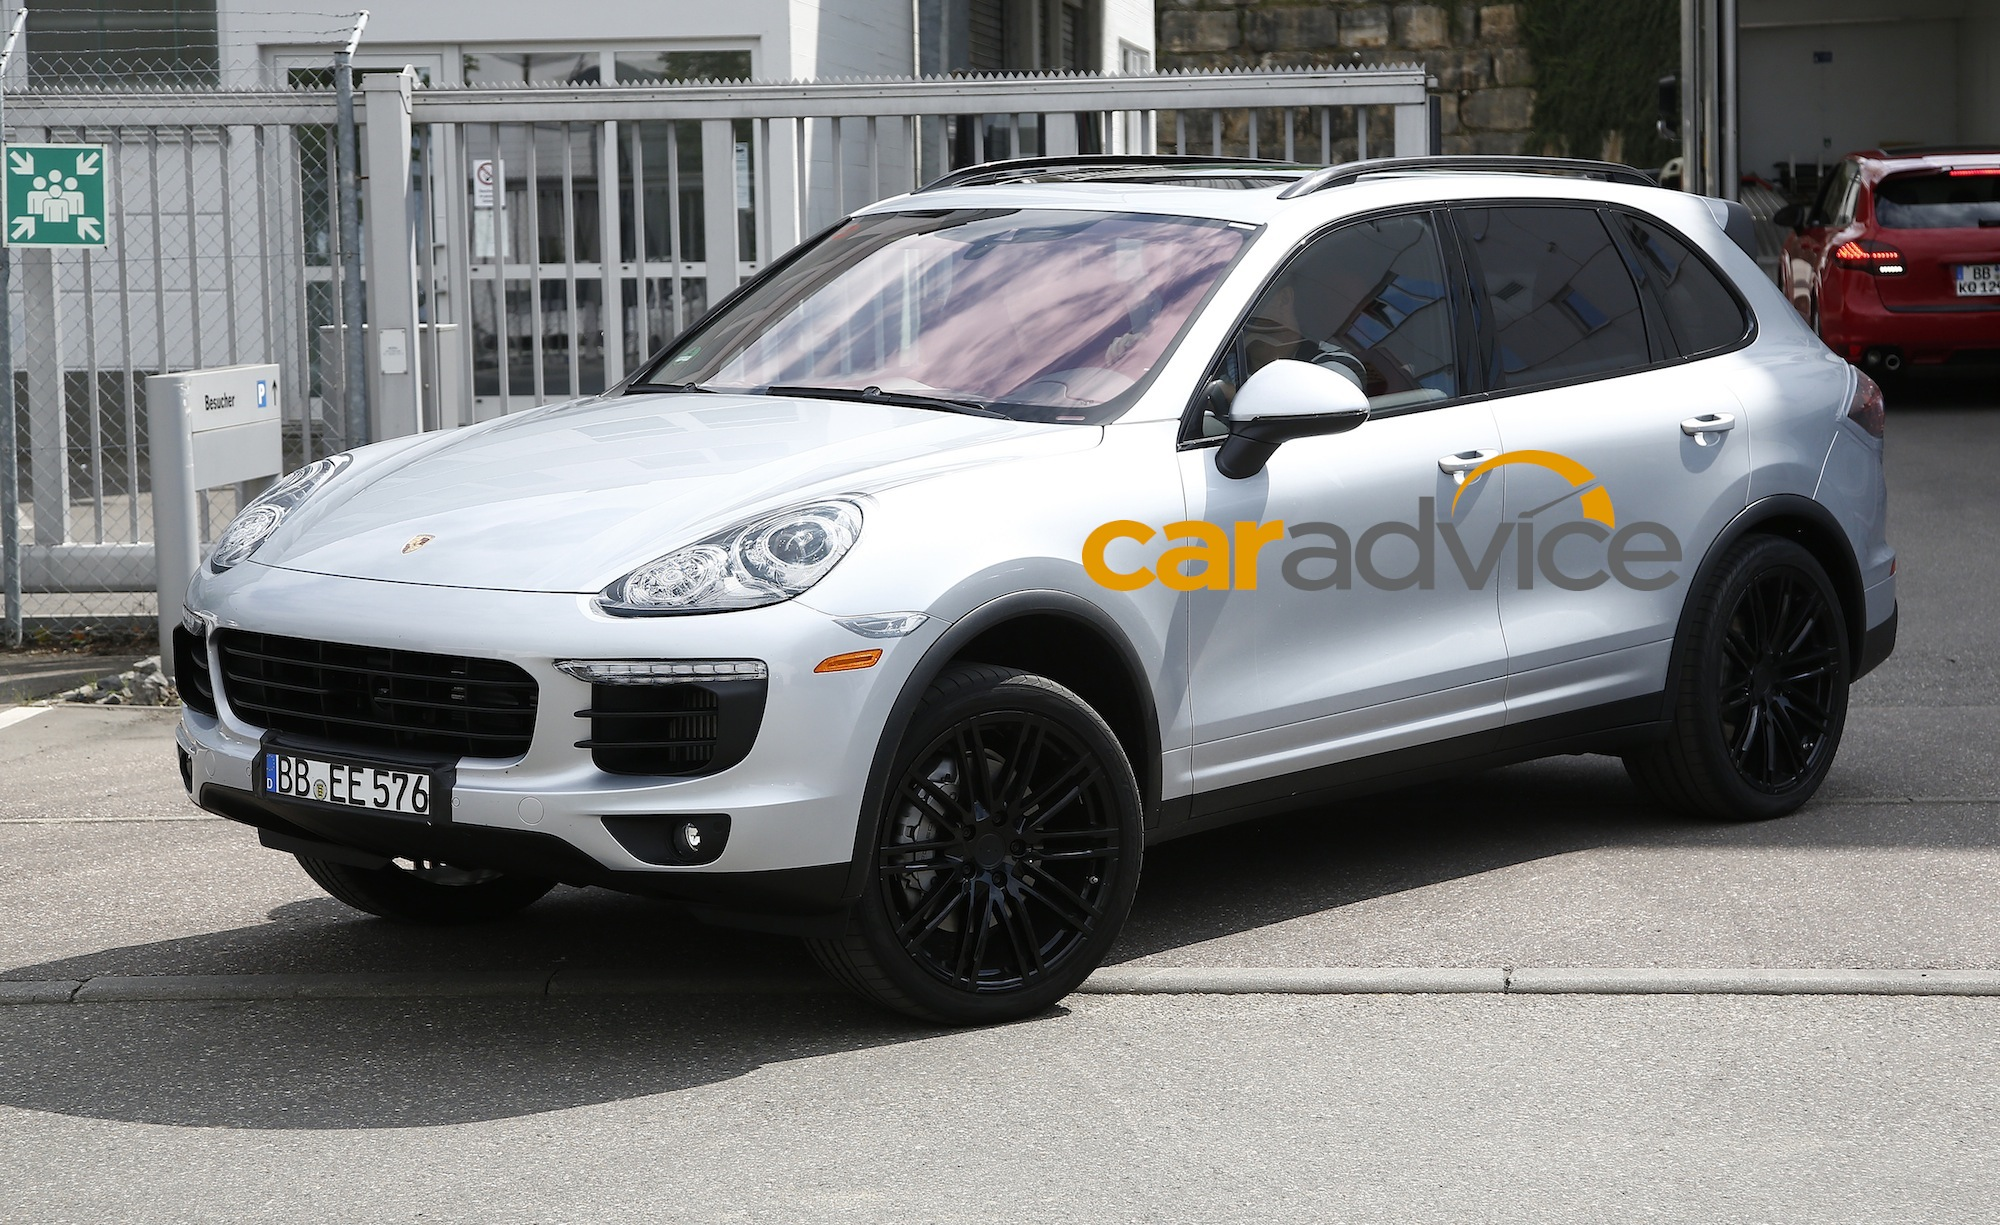 2015 porsche cayenne best look yet at luxury suv facelift photos 1 of 7. Black Bedroom Furniture Sets. Home Design Ideas